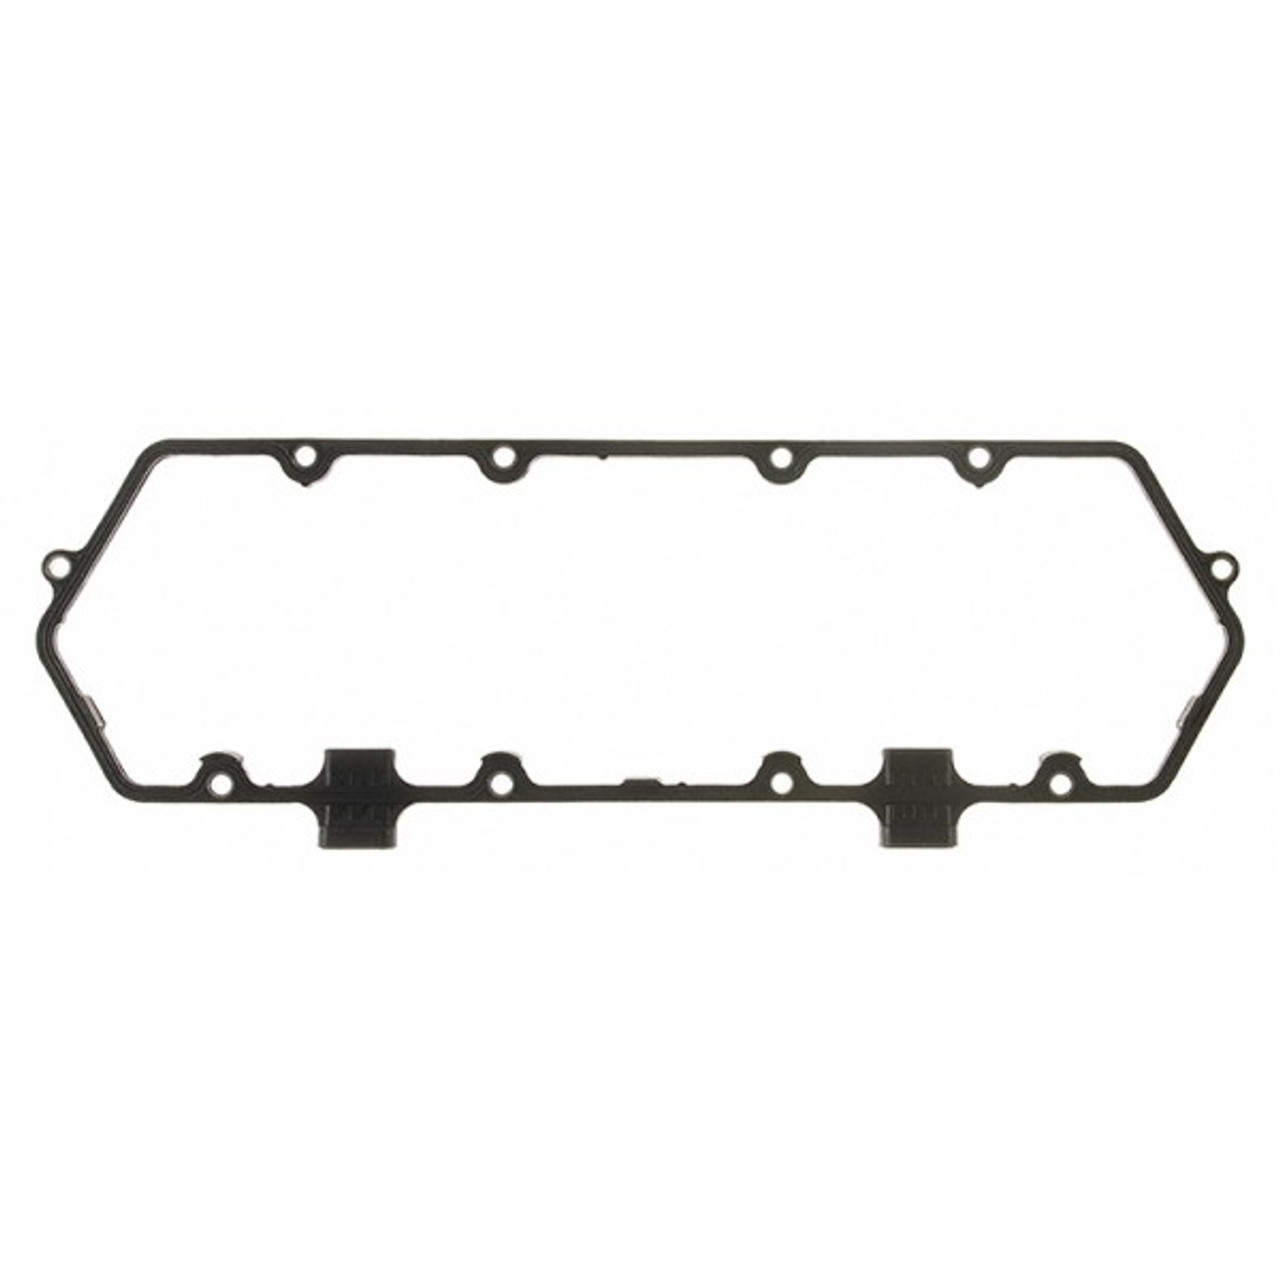 hight resolution of ford oem under valve cover gasket 1994 1997 7 3l powerstroke f4tz6584a